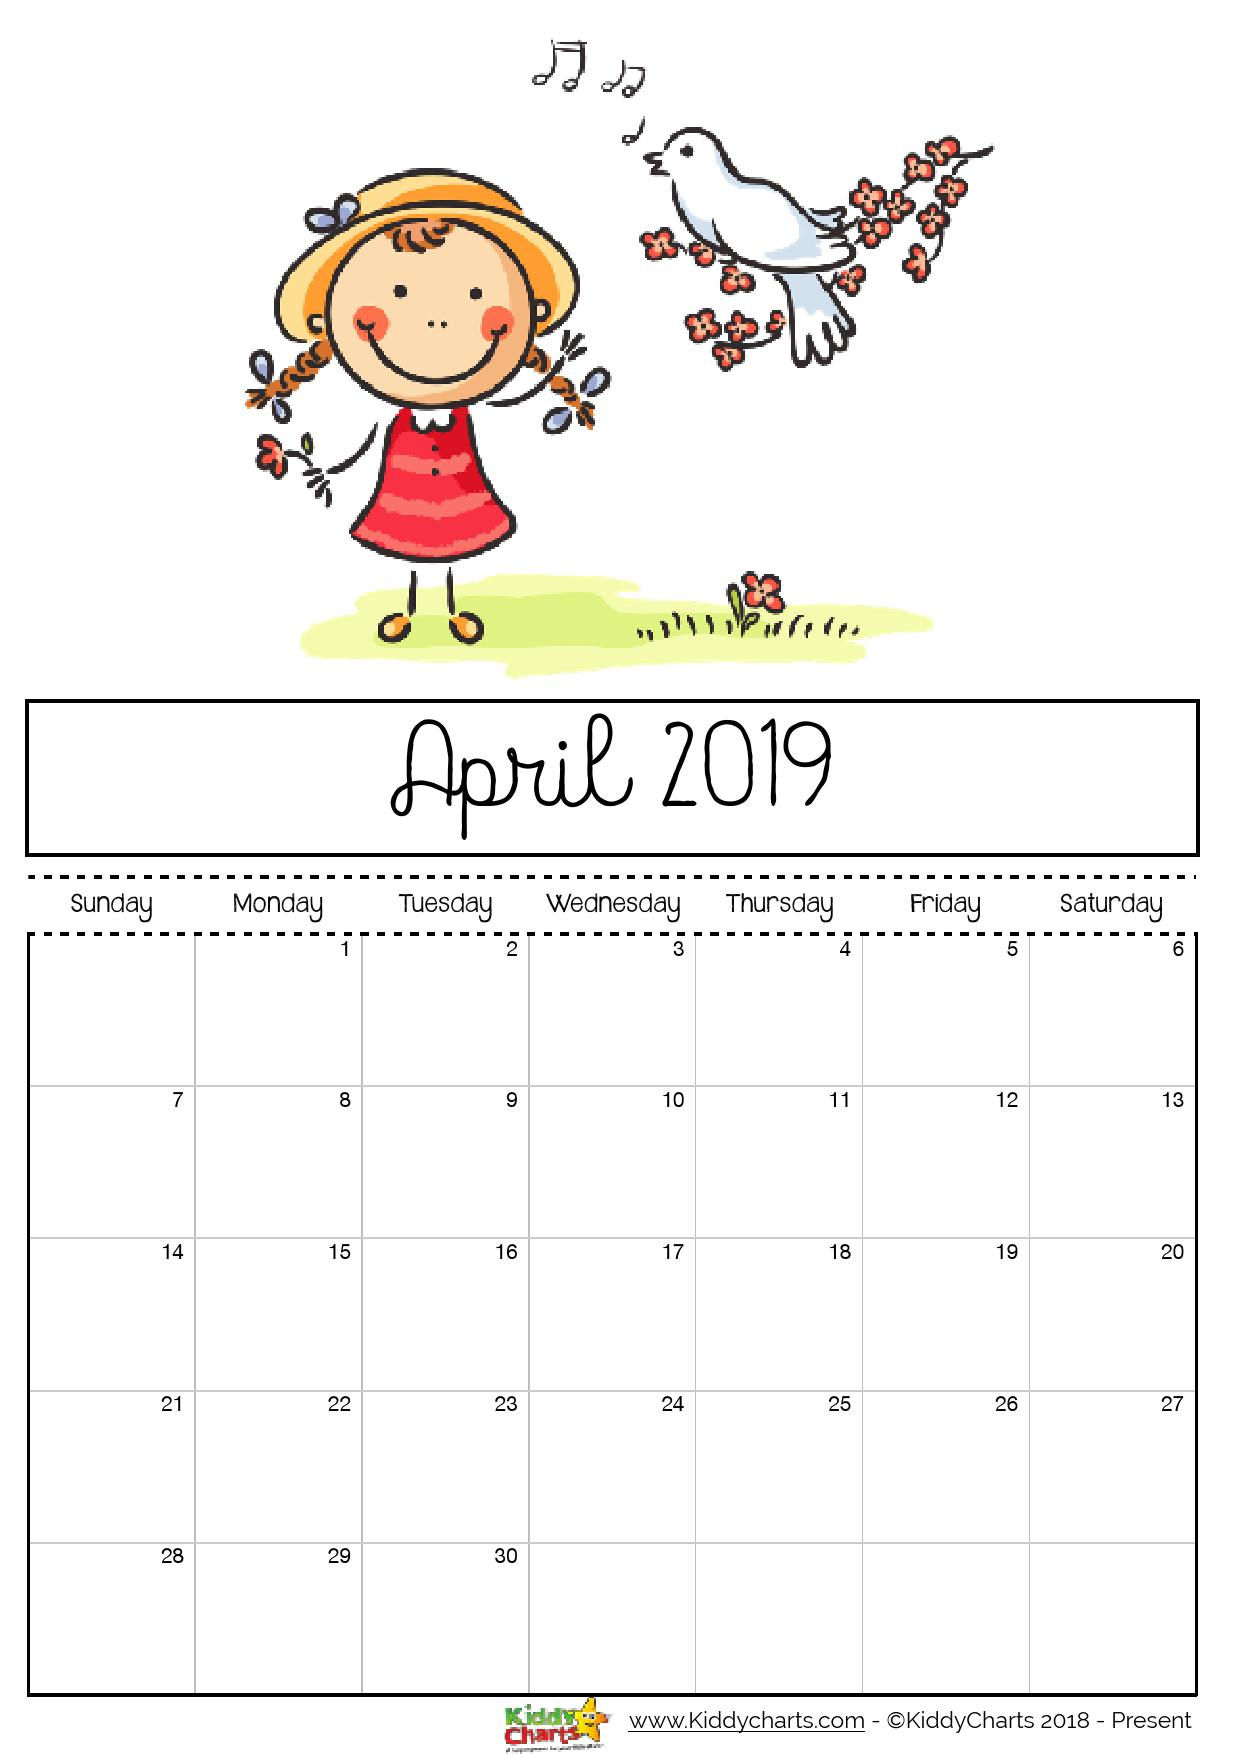 April Reward Chart Printable